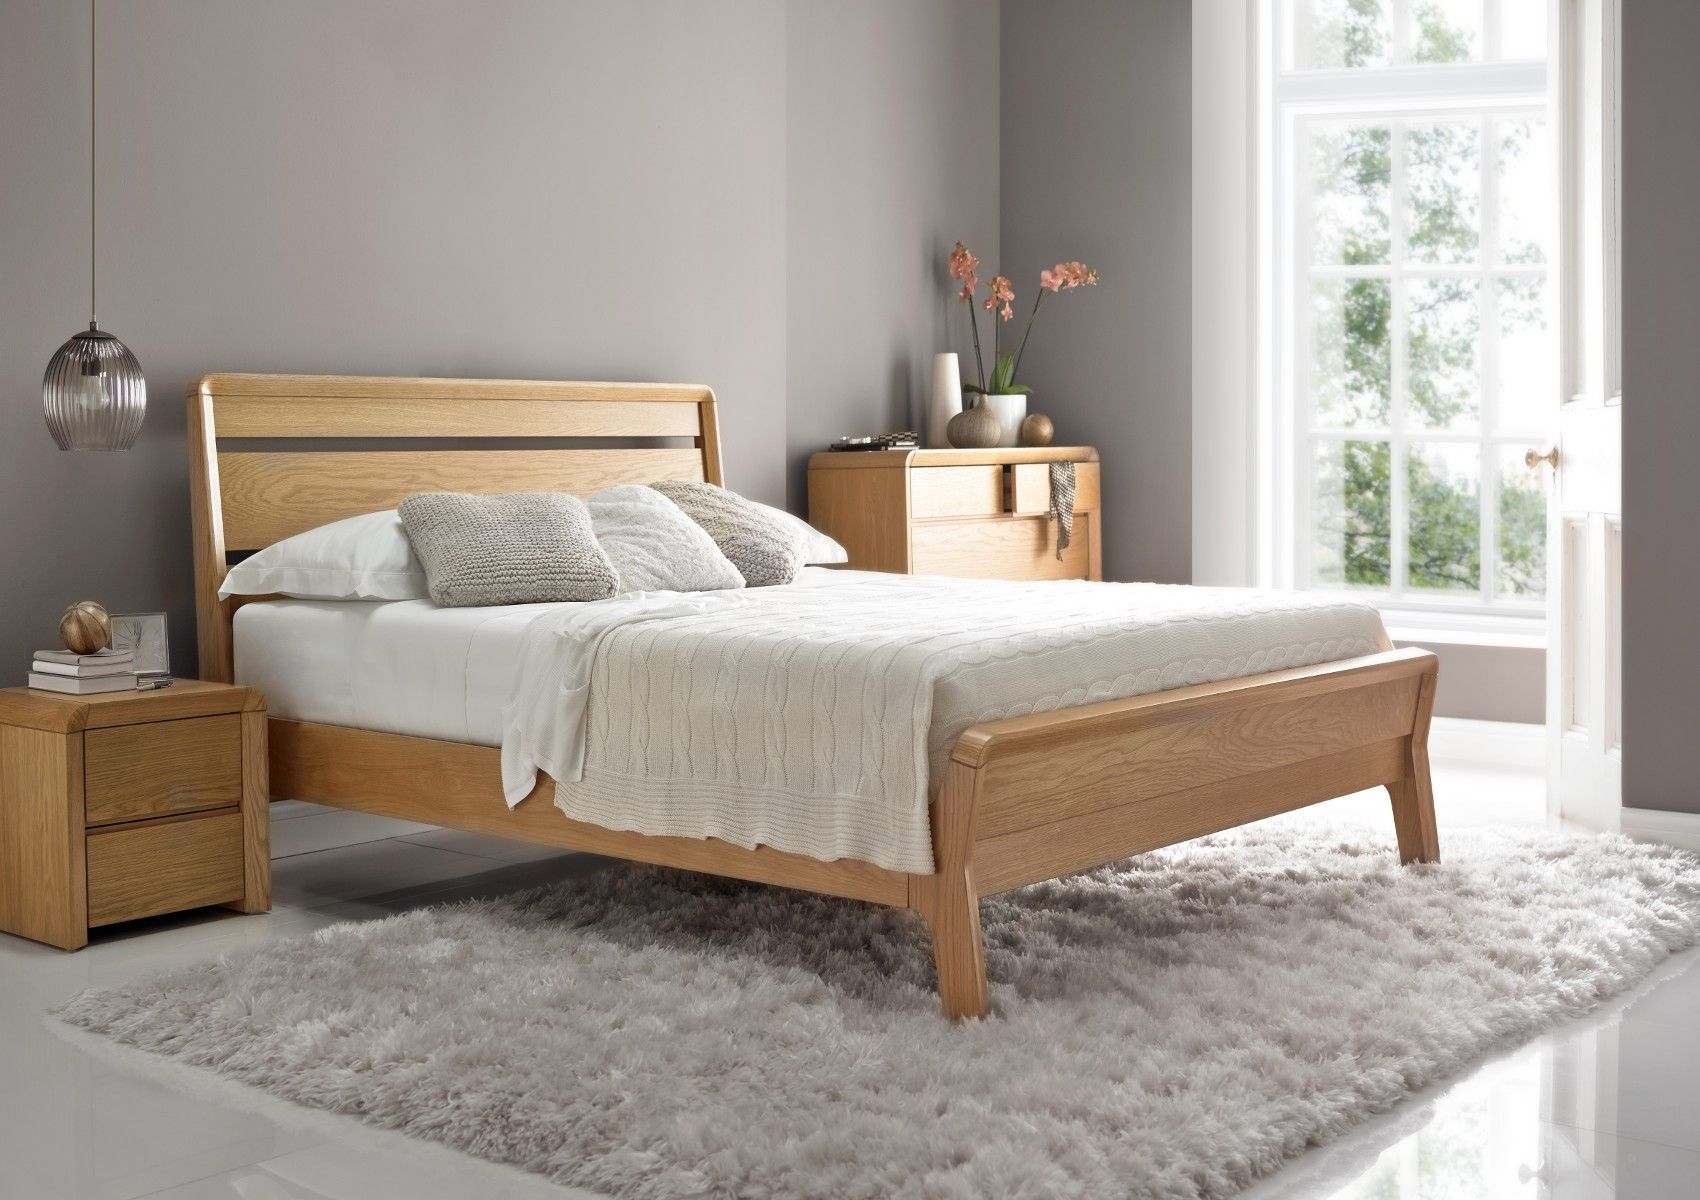 Brittany Oak Finish Bed Frame Light Wood Wooden Beds Beds King Size Bed Frame Oak Bedroom Furniture Cheap